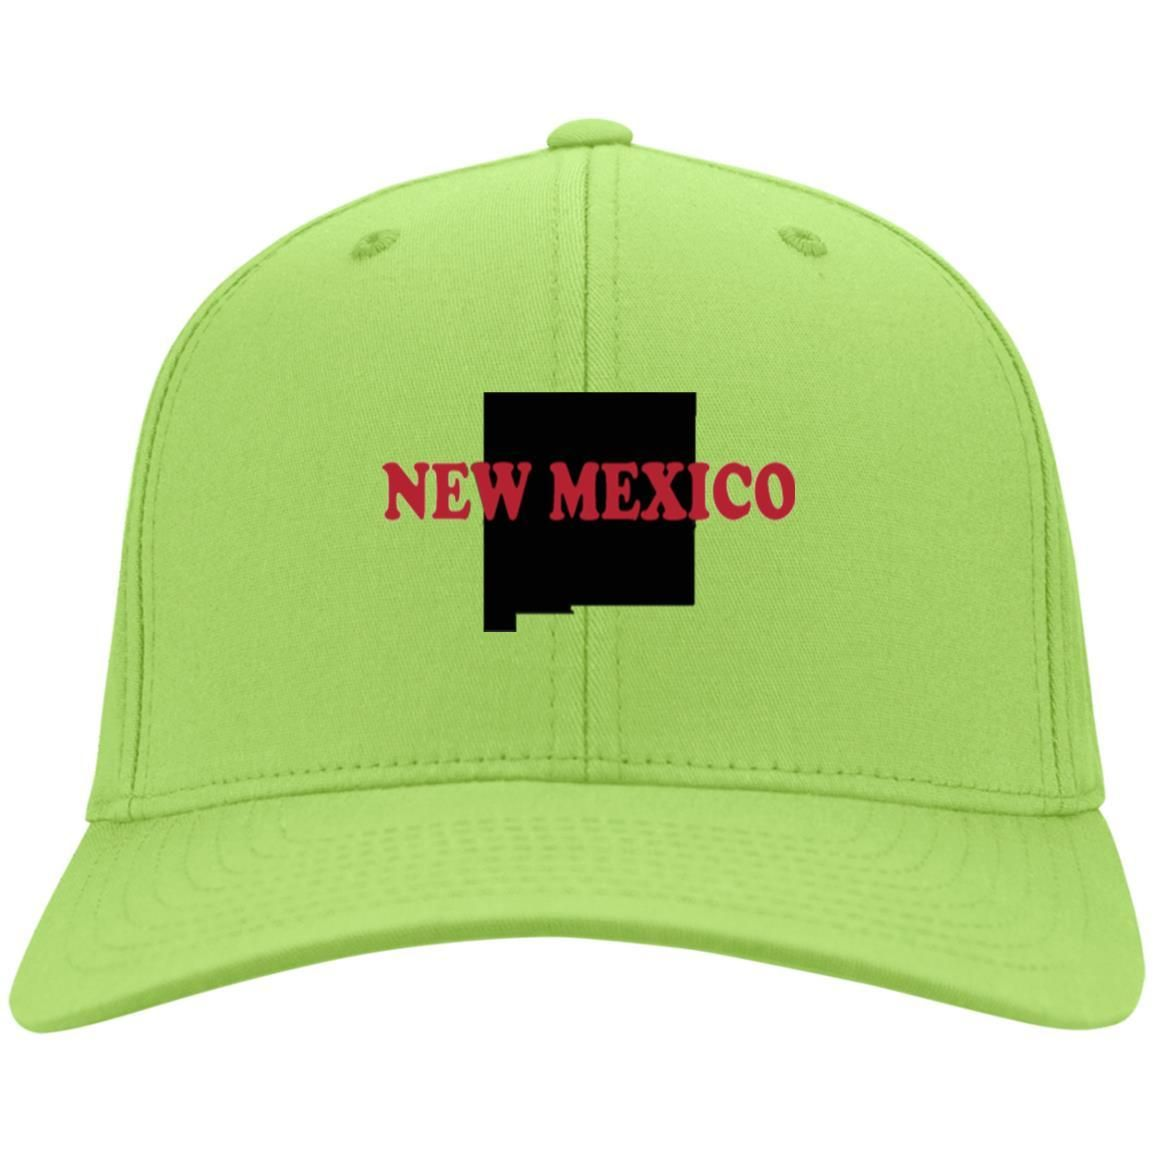 New Mexico State Hat | Products | Hats, Wyoming state